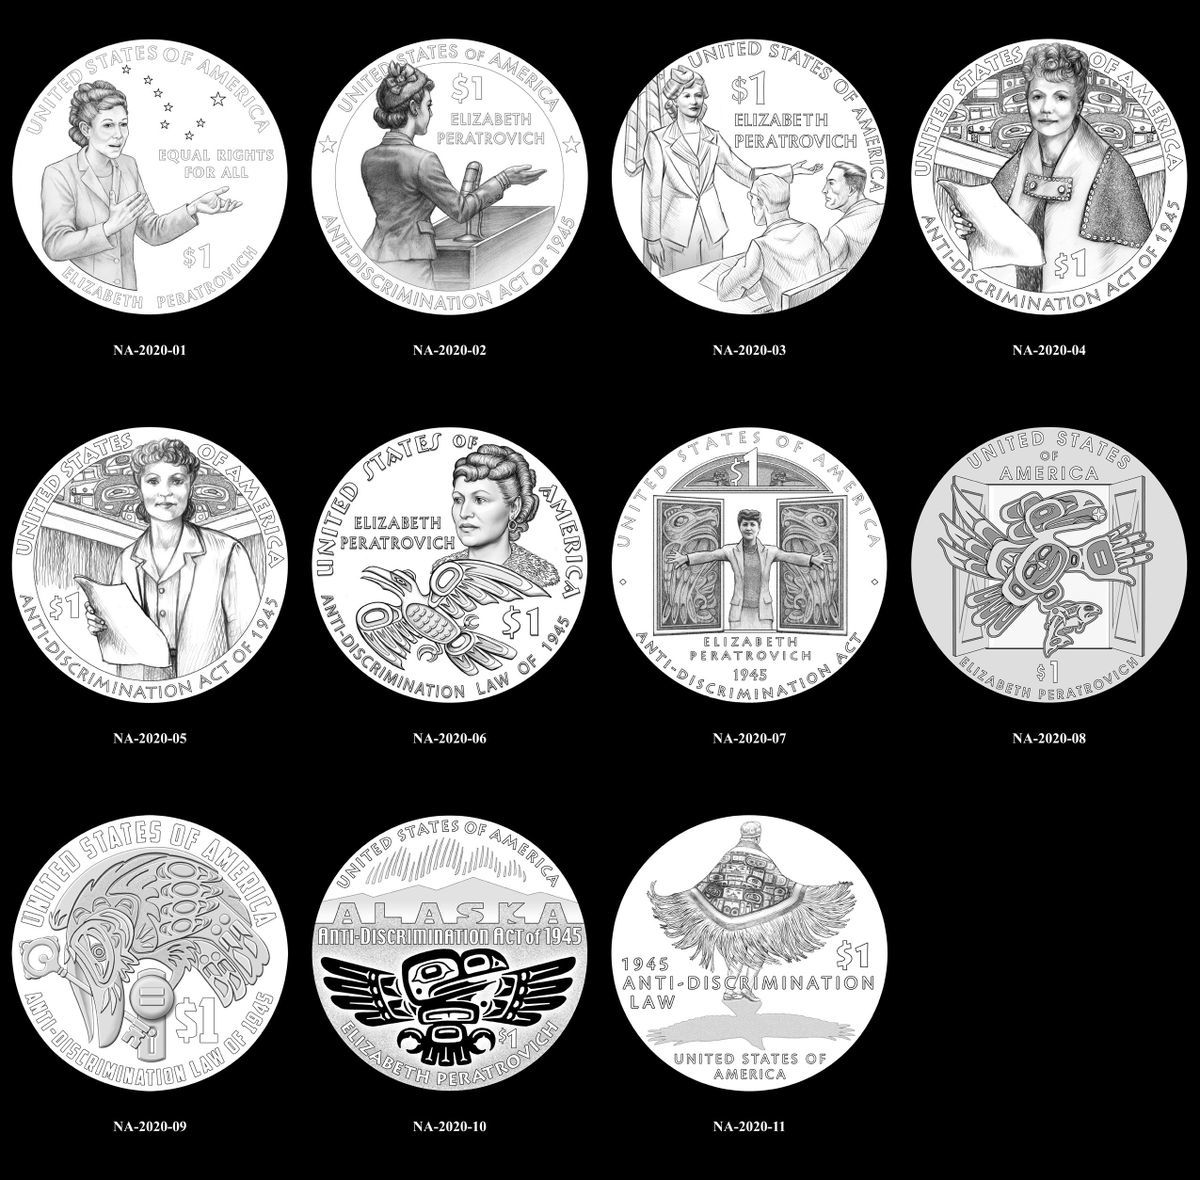 Peratrovich will also be commemorated on a one dollar coin, to be issued in 2020. There are eleven proposed designs. (Photo courtesy Office of AK Gov. Bill Walker)